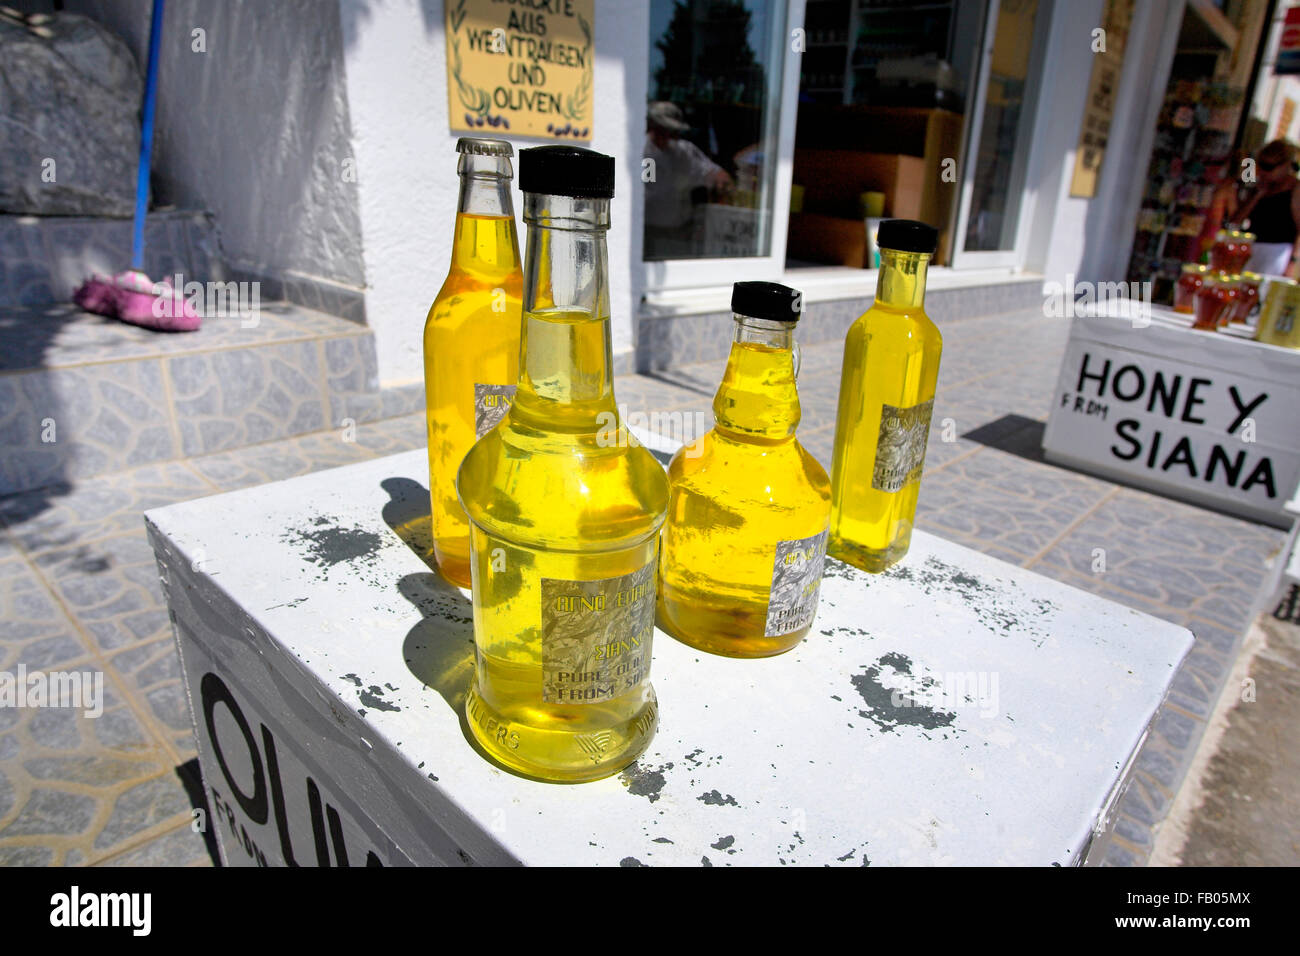 Olive oil sold in Siana village, Rhodes Island, Greece - Stock Image